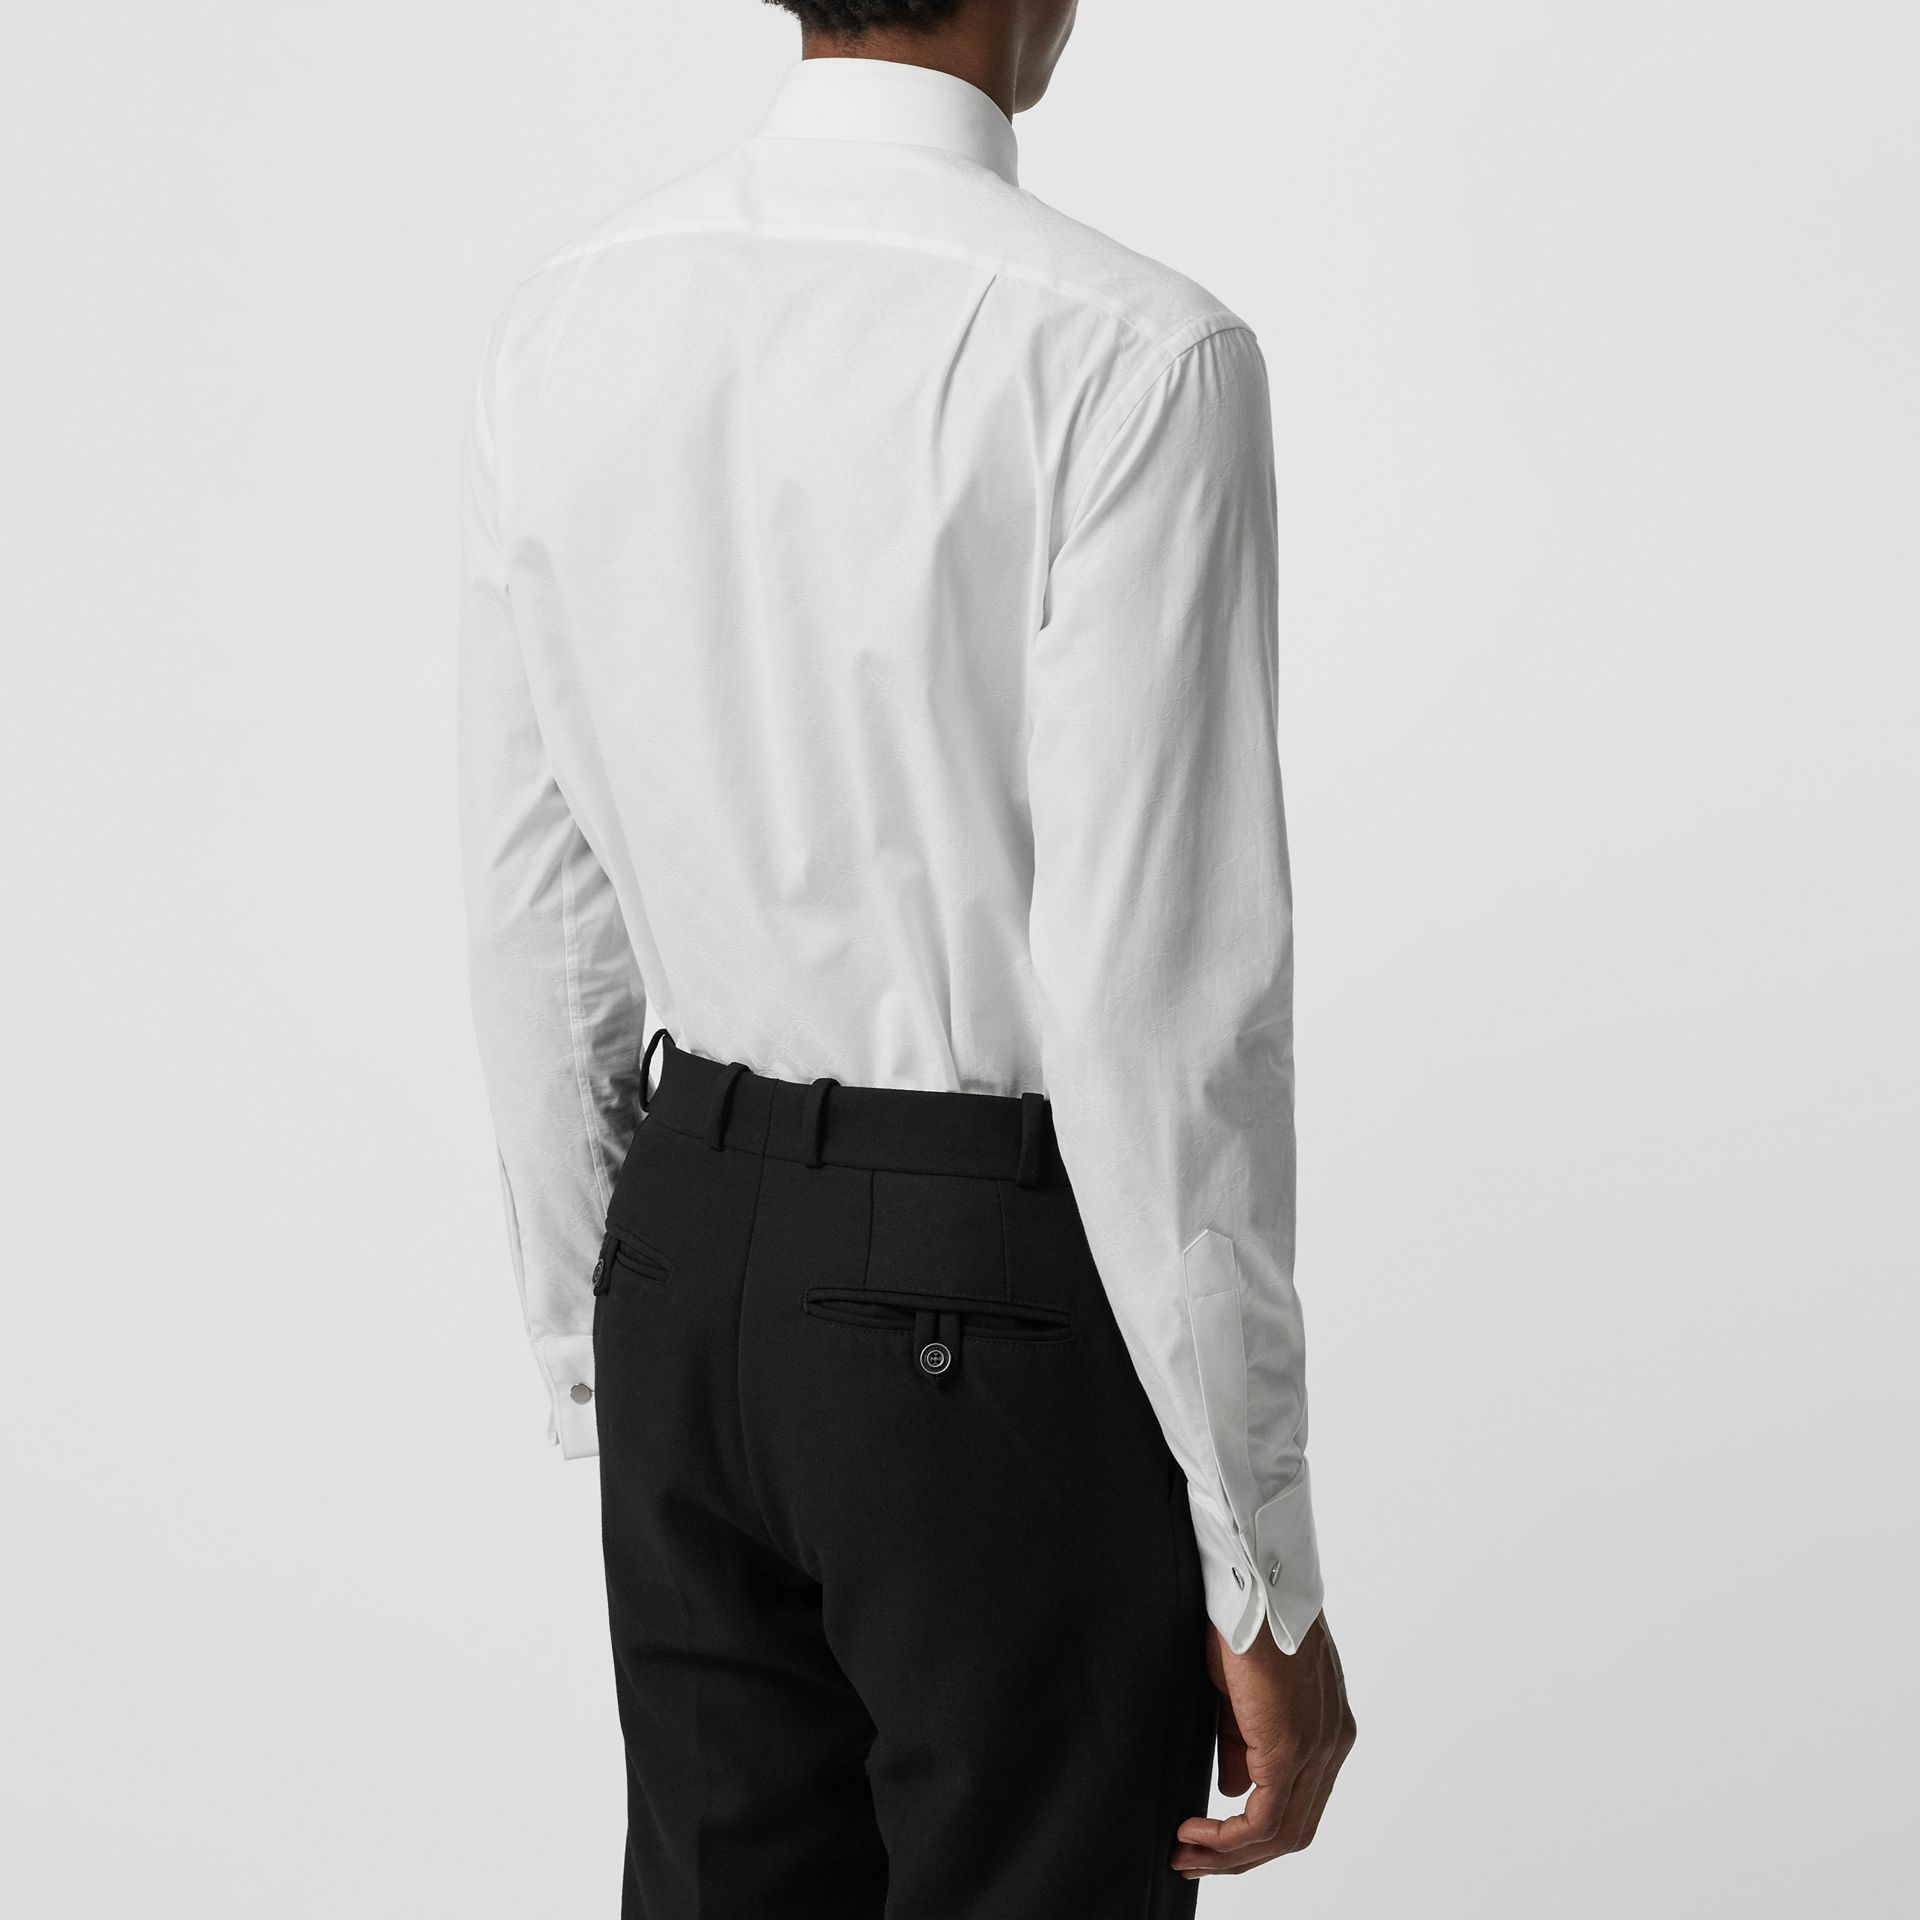 Classic Fit Link Cotton Jacquard Dress Shirt in White - Men | Burberry Australia - gallery image 2